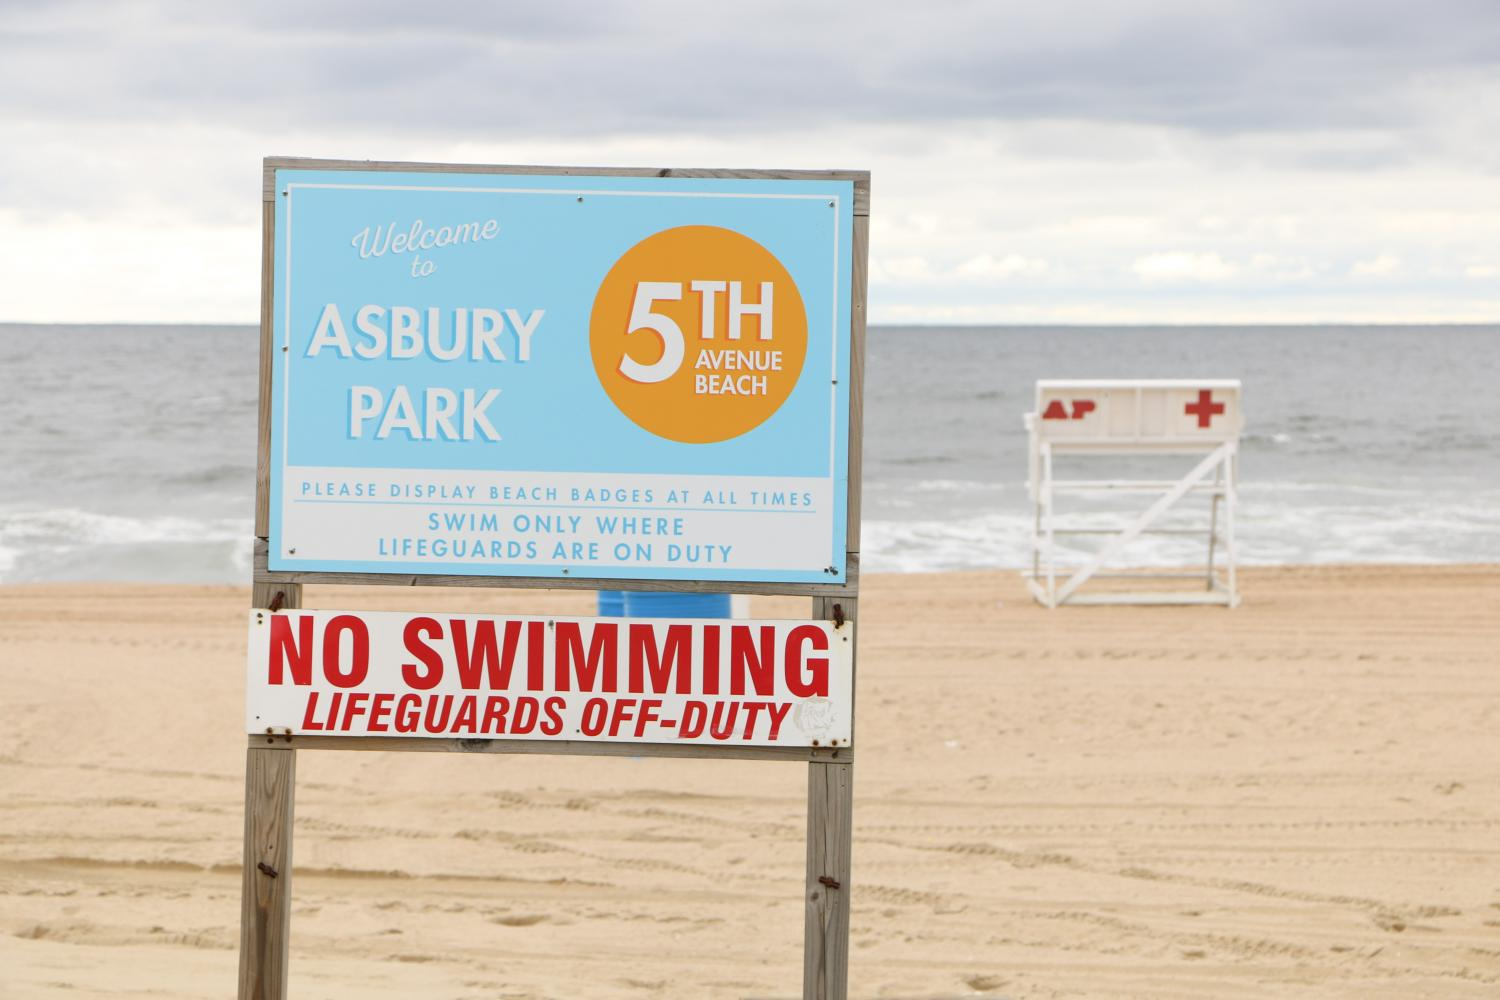 The+Asbury+Park+boardwalk+is+a+popular+New+Jersey+tourist+destination.+